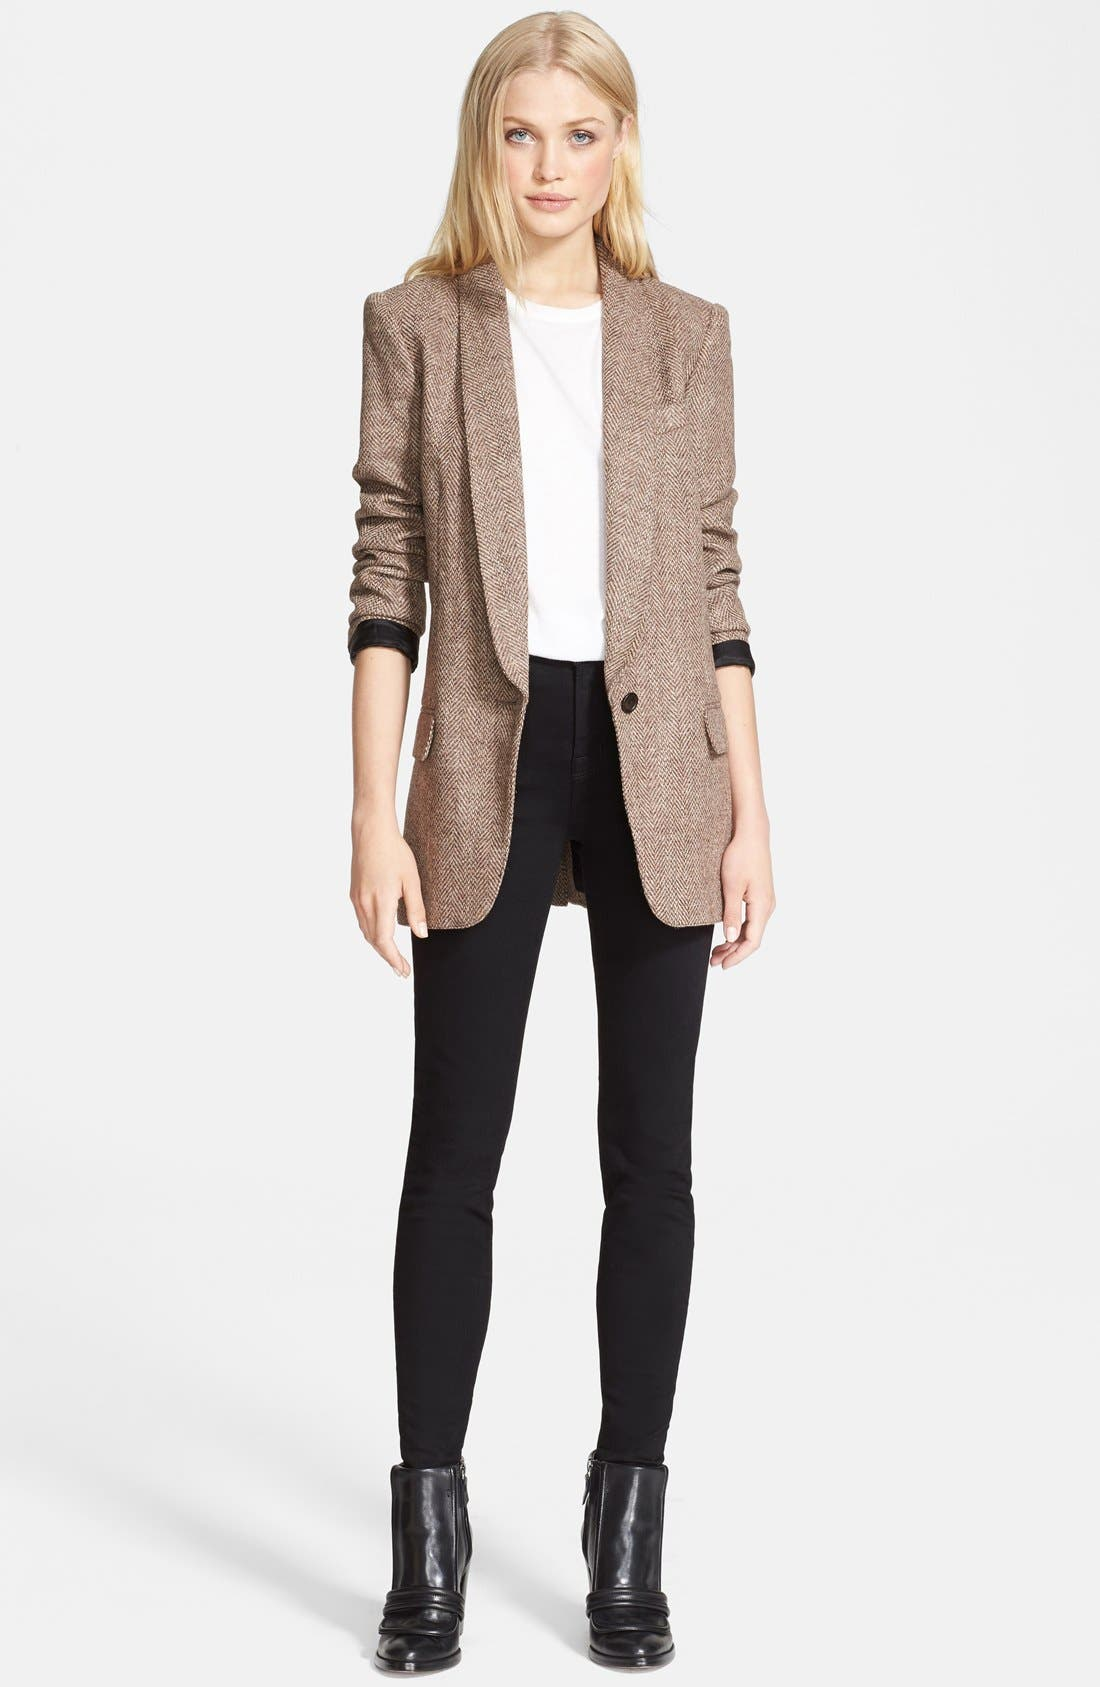 SMYTHE, Herringbone Boyfriend Blazer, Alternate thumbnail 3, color, 251